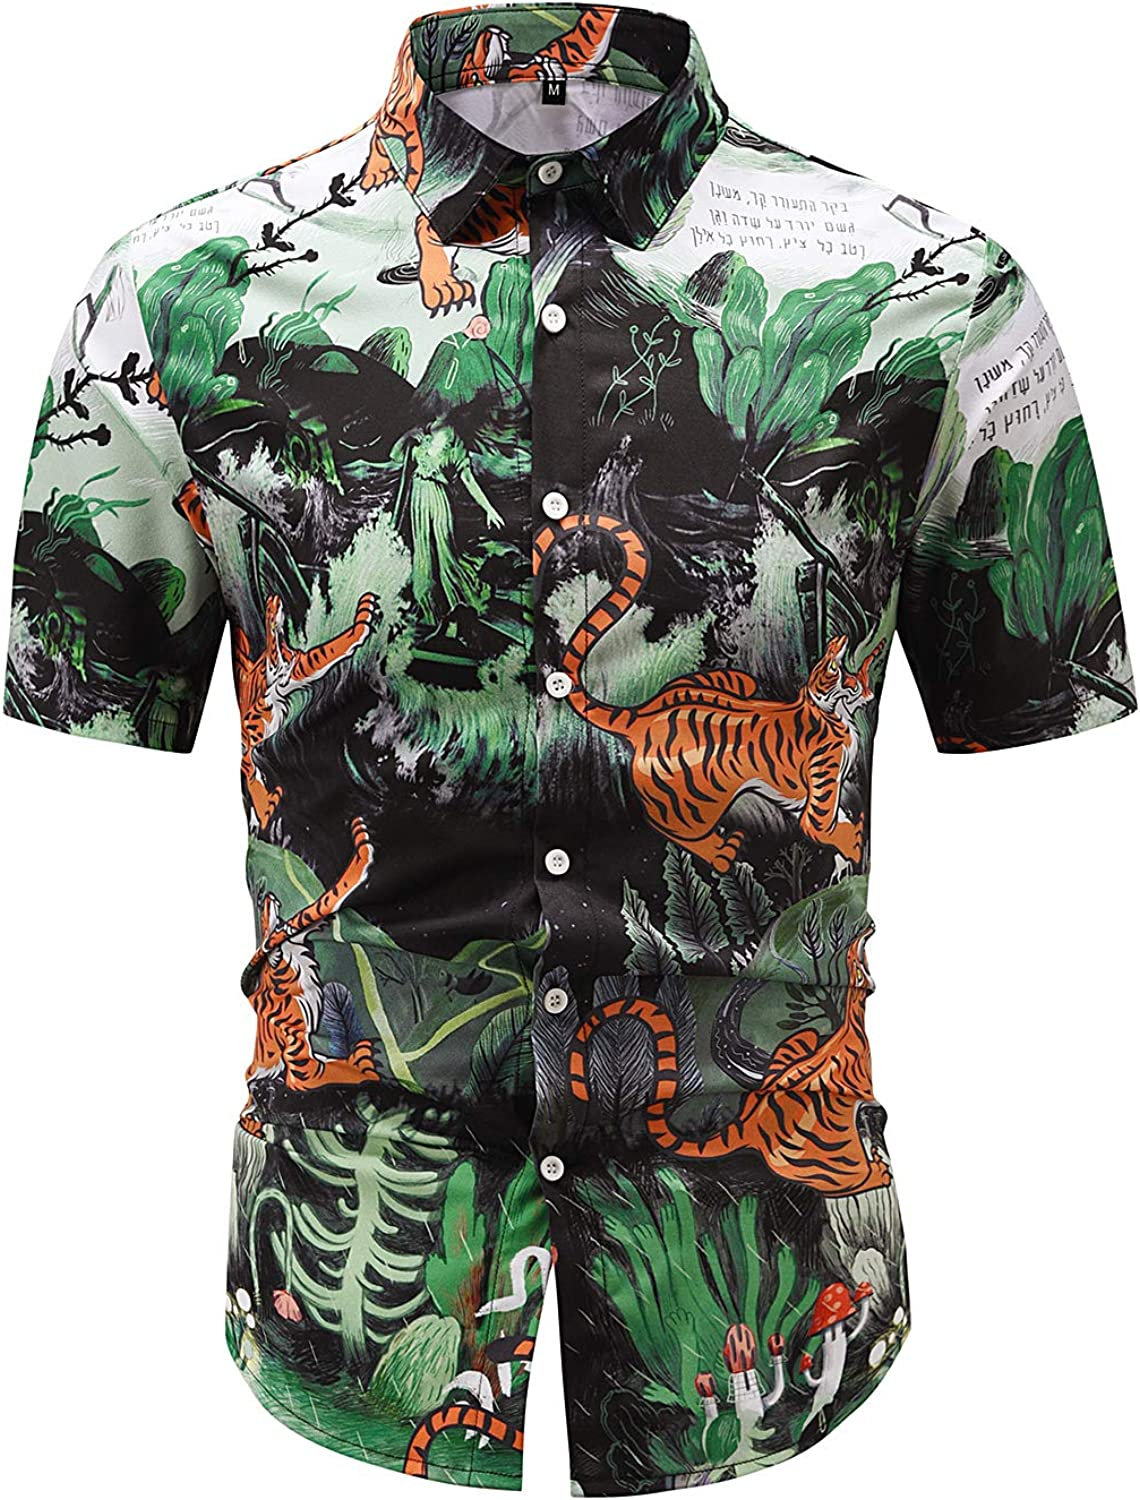 Trendy Personality Tiger Pattern Short-Sleeved Loose Men's Shirt Plus Size Casual Men's Shirt